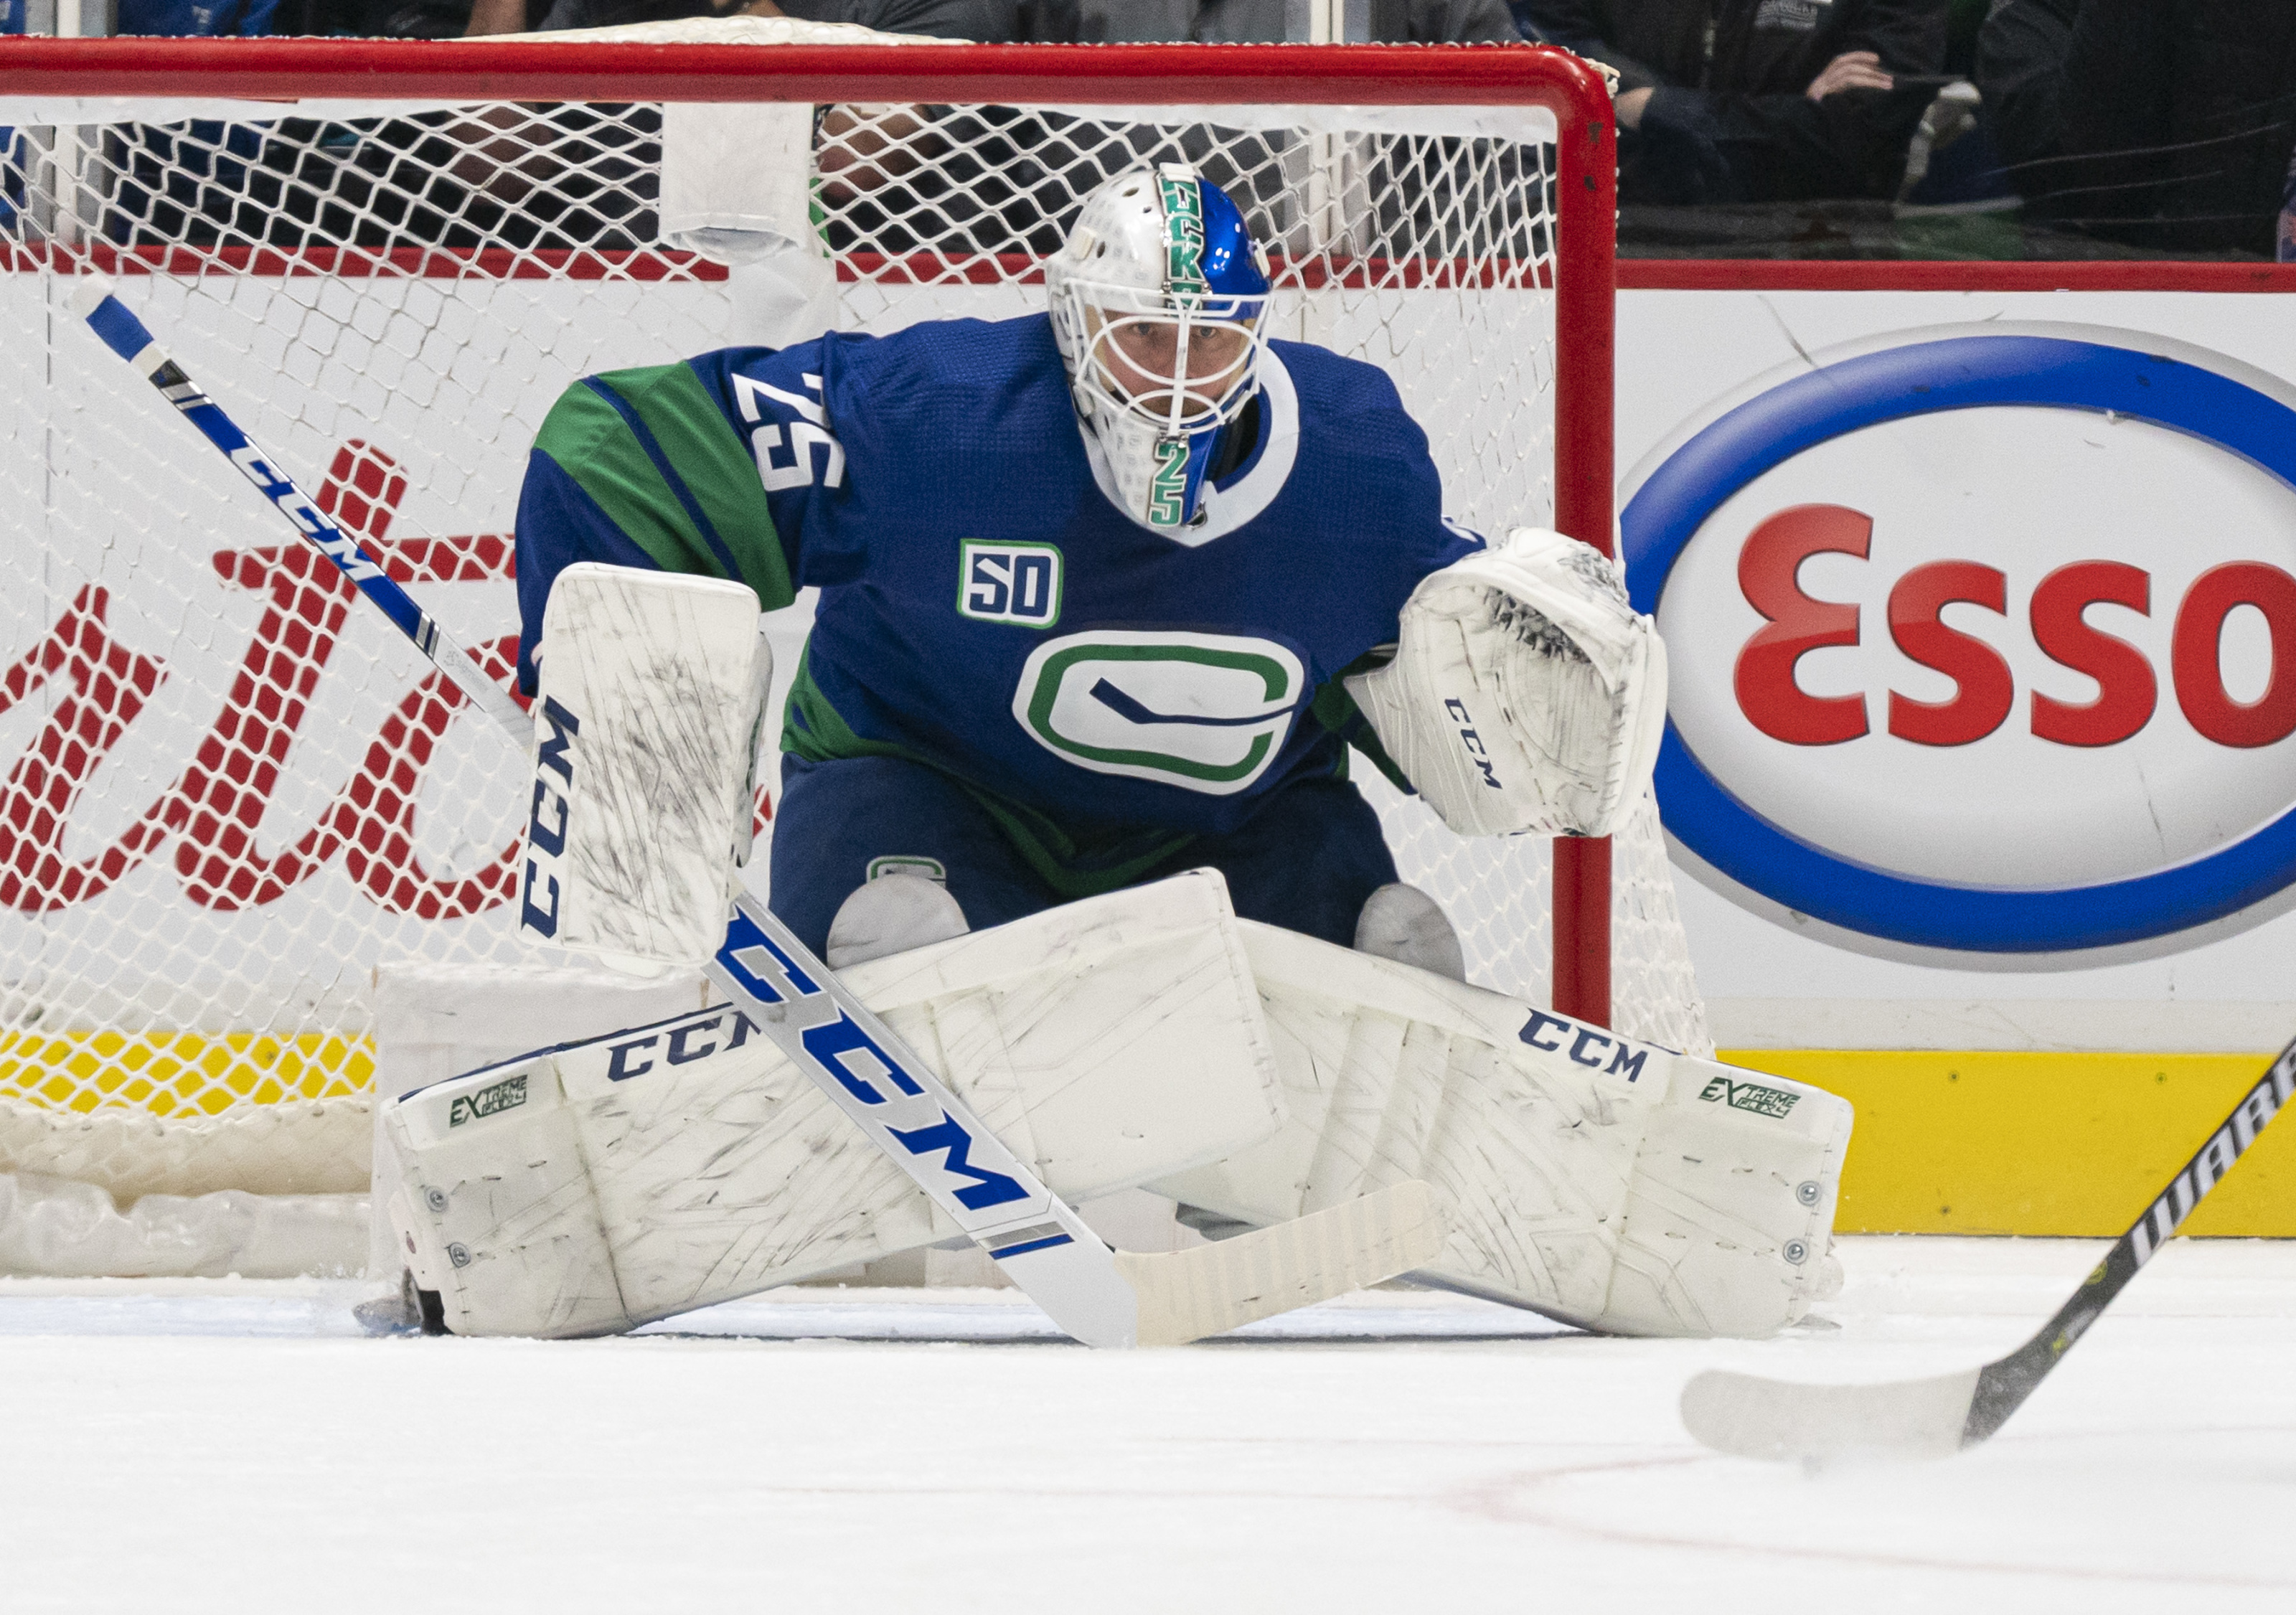 Canucks: What would be a fair deal for Jacob Markstrom?